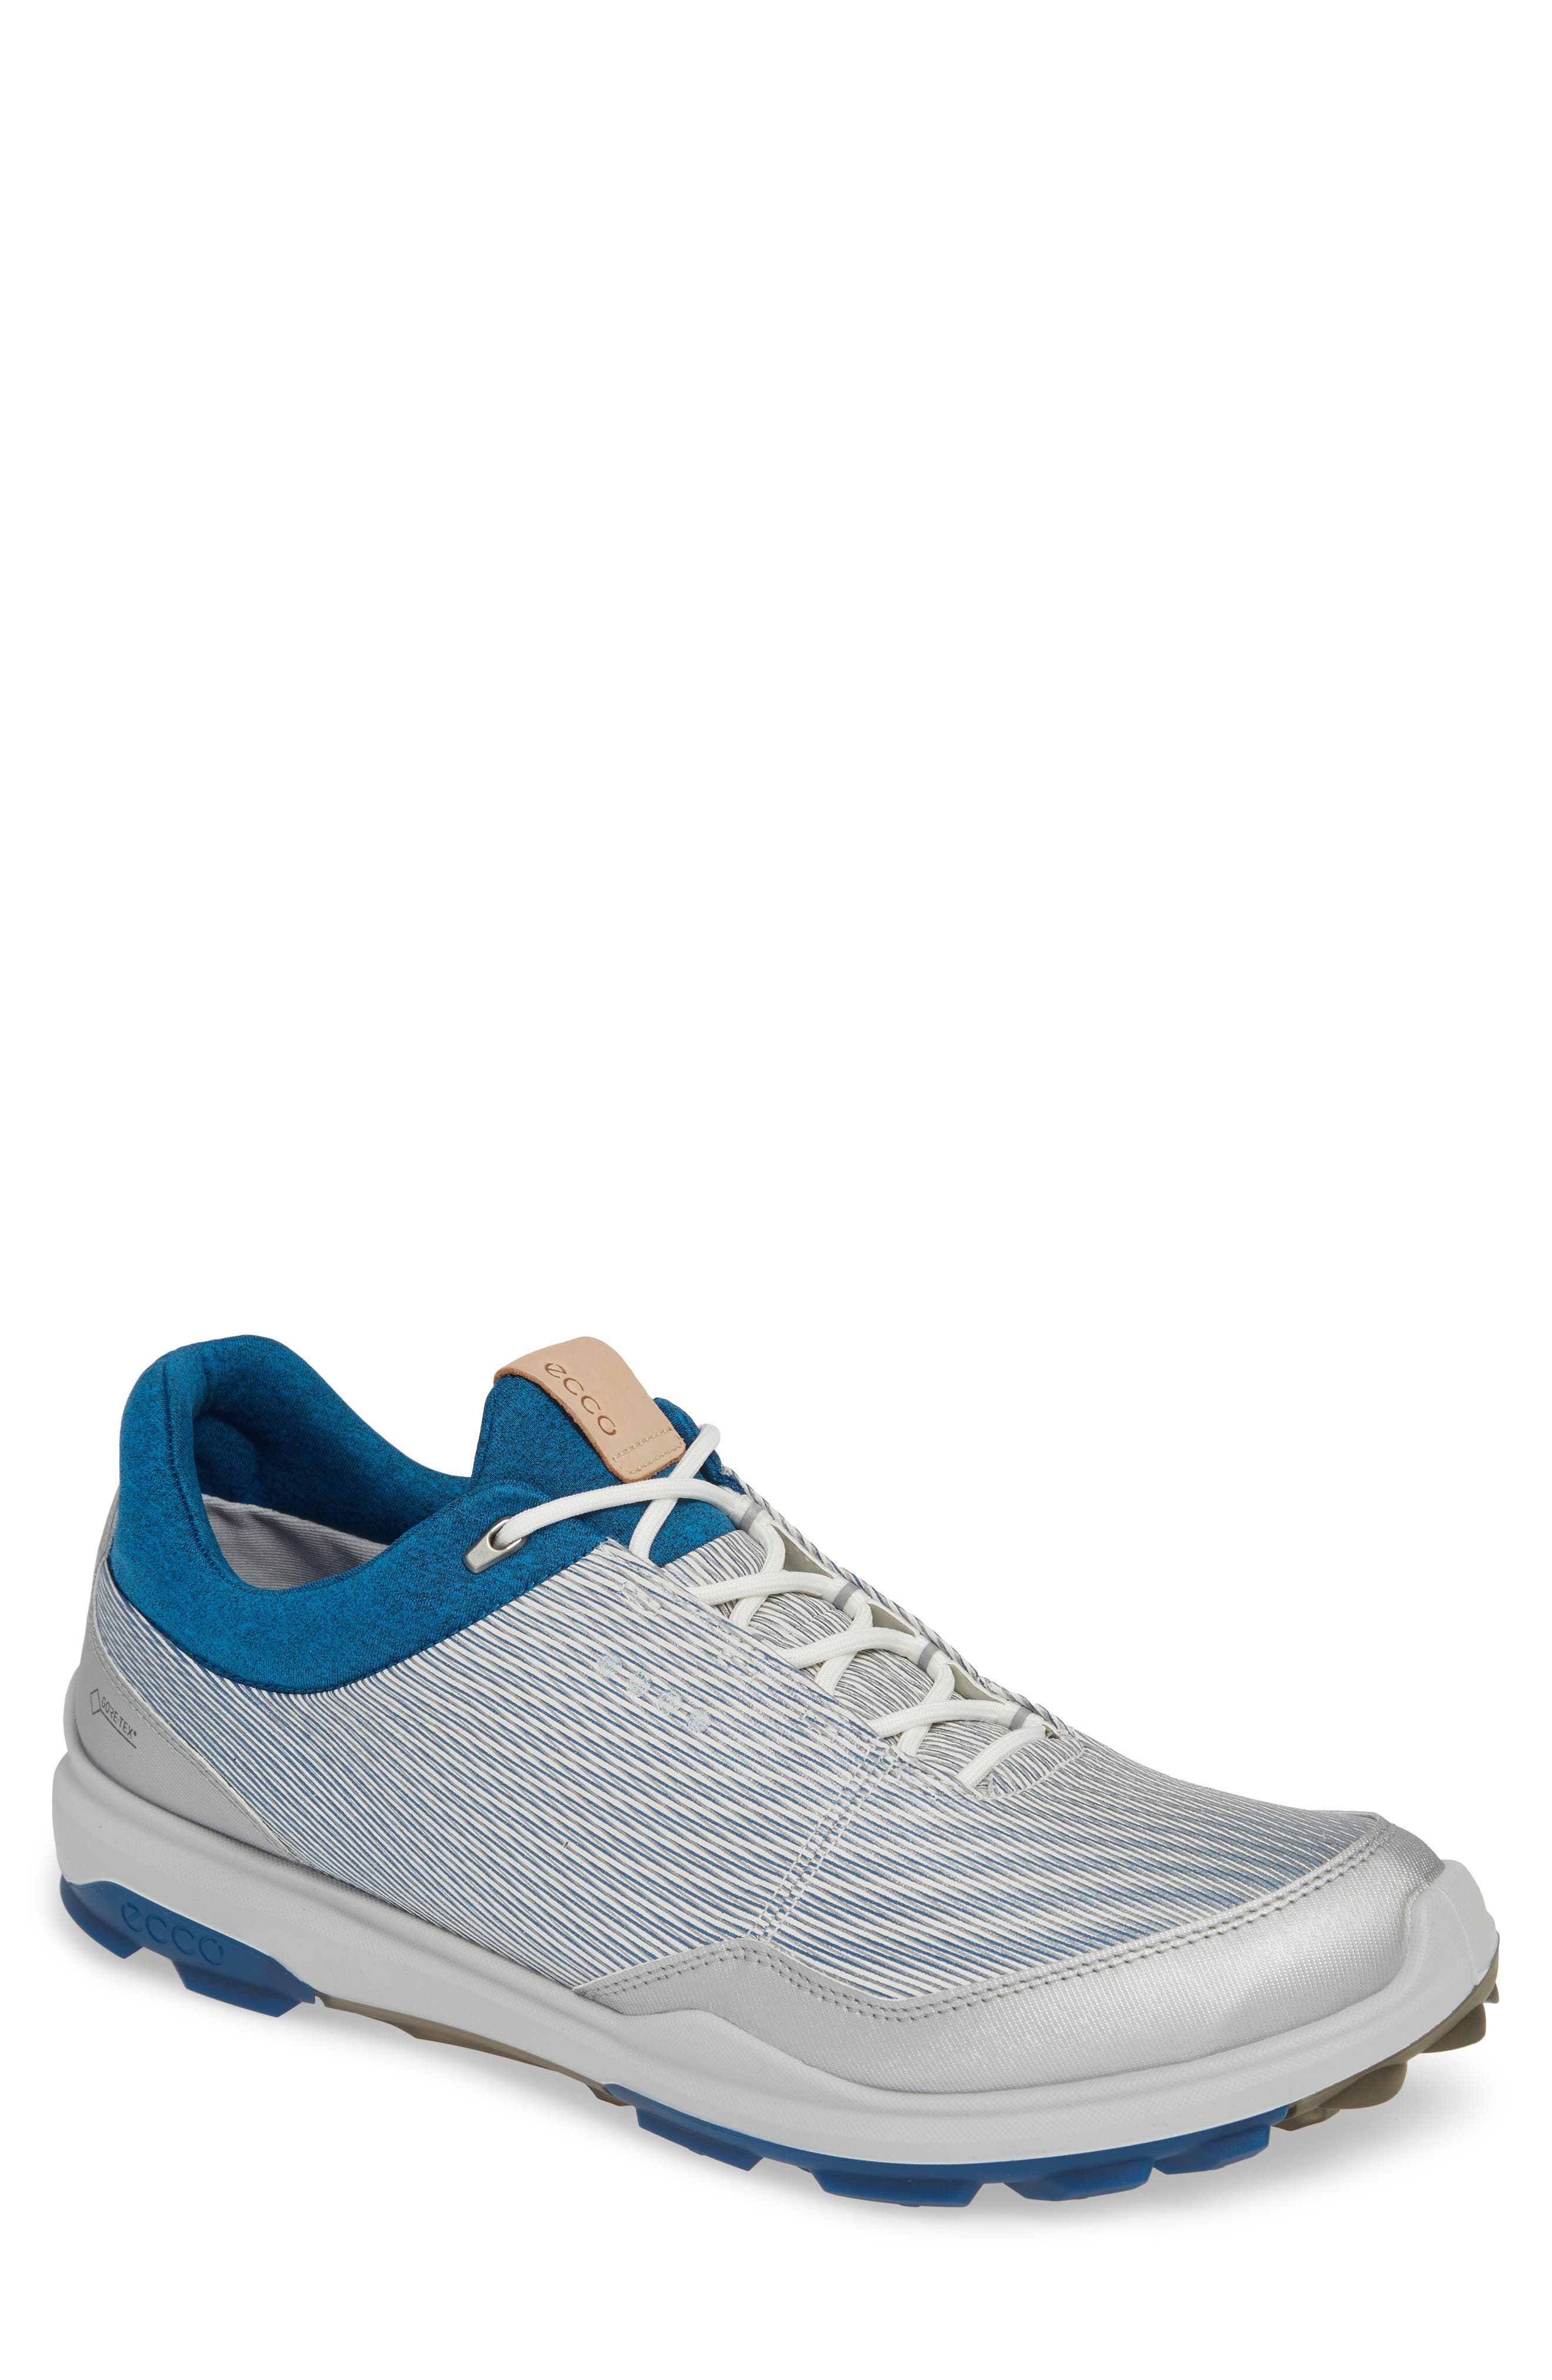 04489980f3d29 ECCO - Men s Casual Fashion Shoes and Sneakers